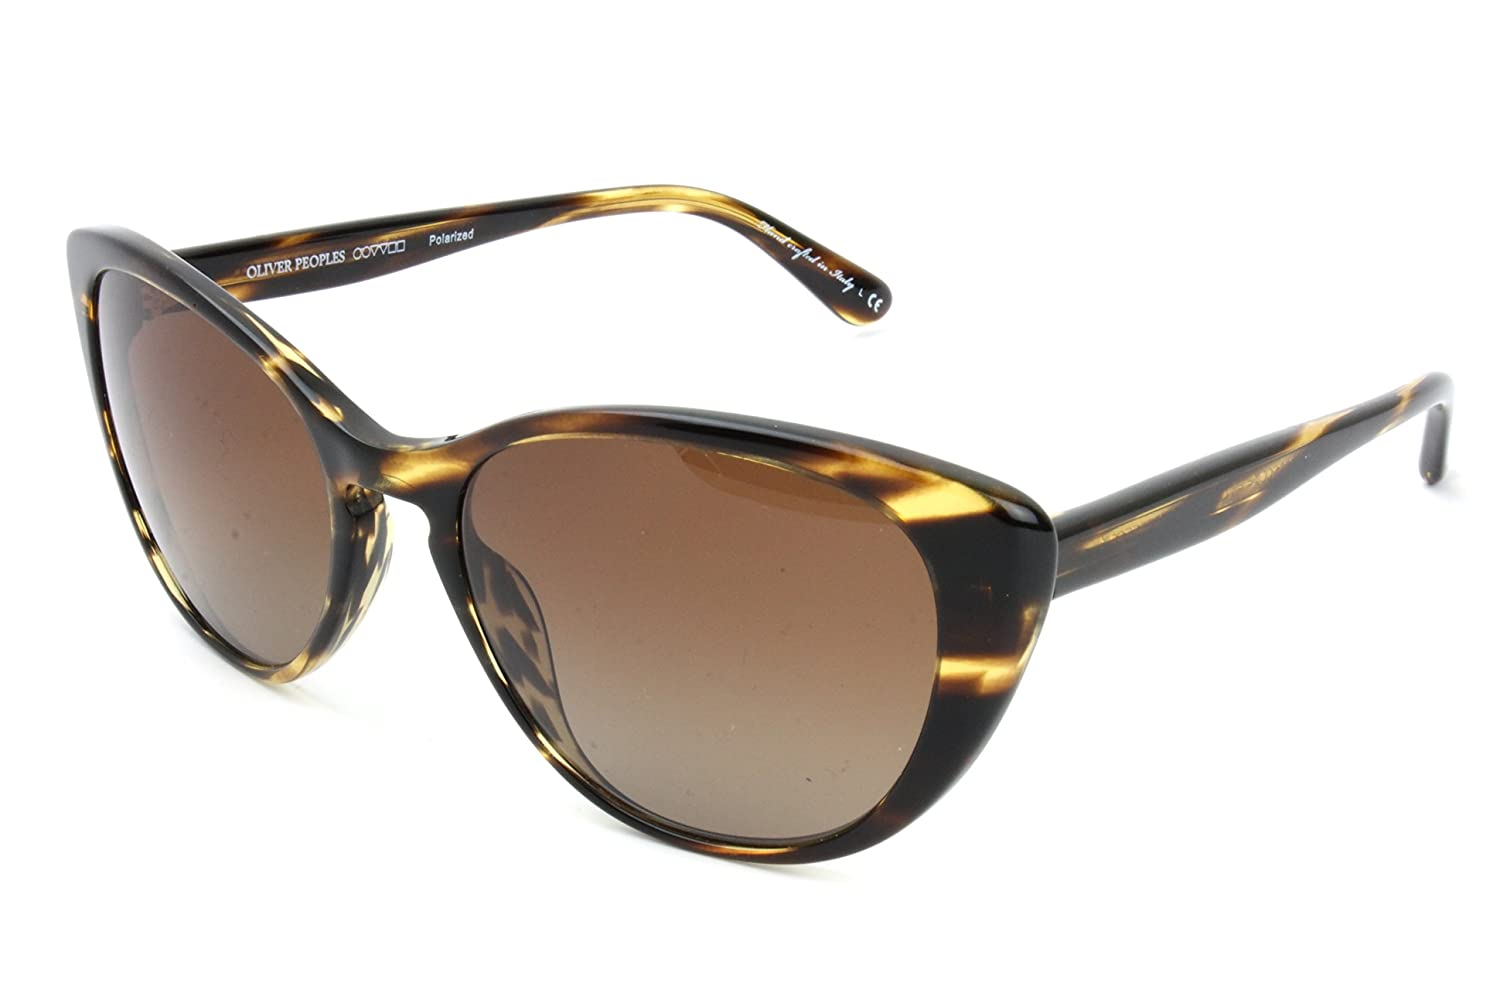 e390fb7ae0 Amazon.com  Oliver Peoples 5239S 1003T5 Tortoise Shell Haley Cats Eyes  Sunglasses Polarised  Clothing